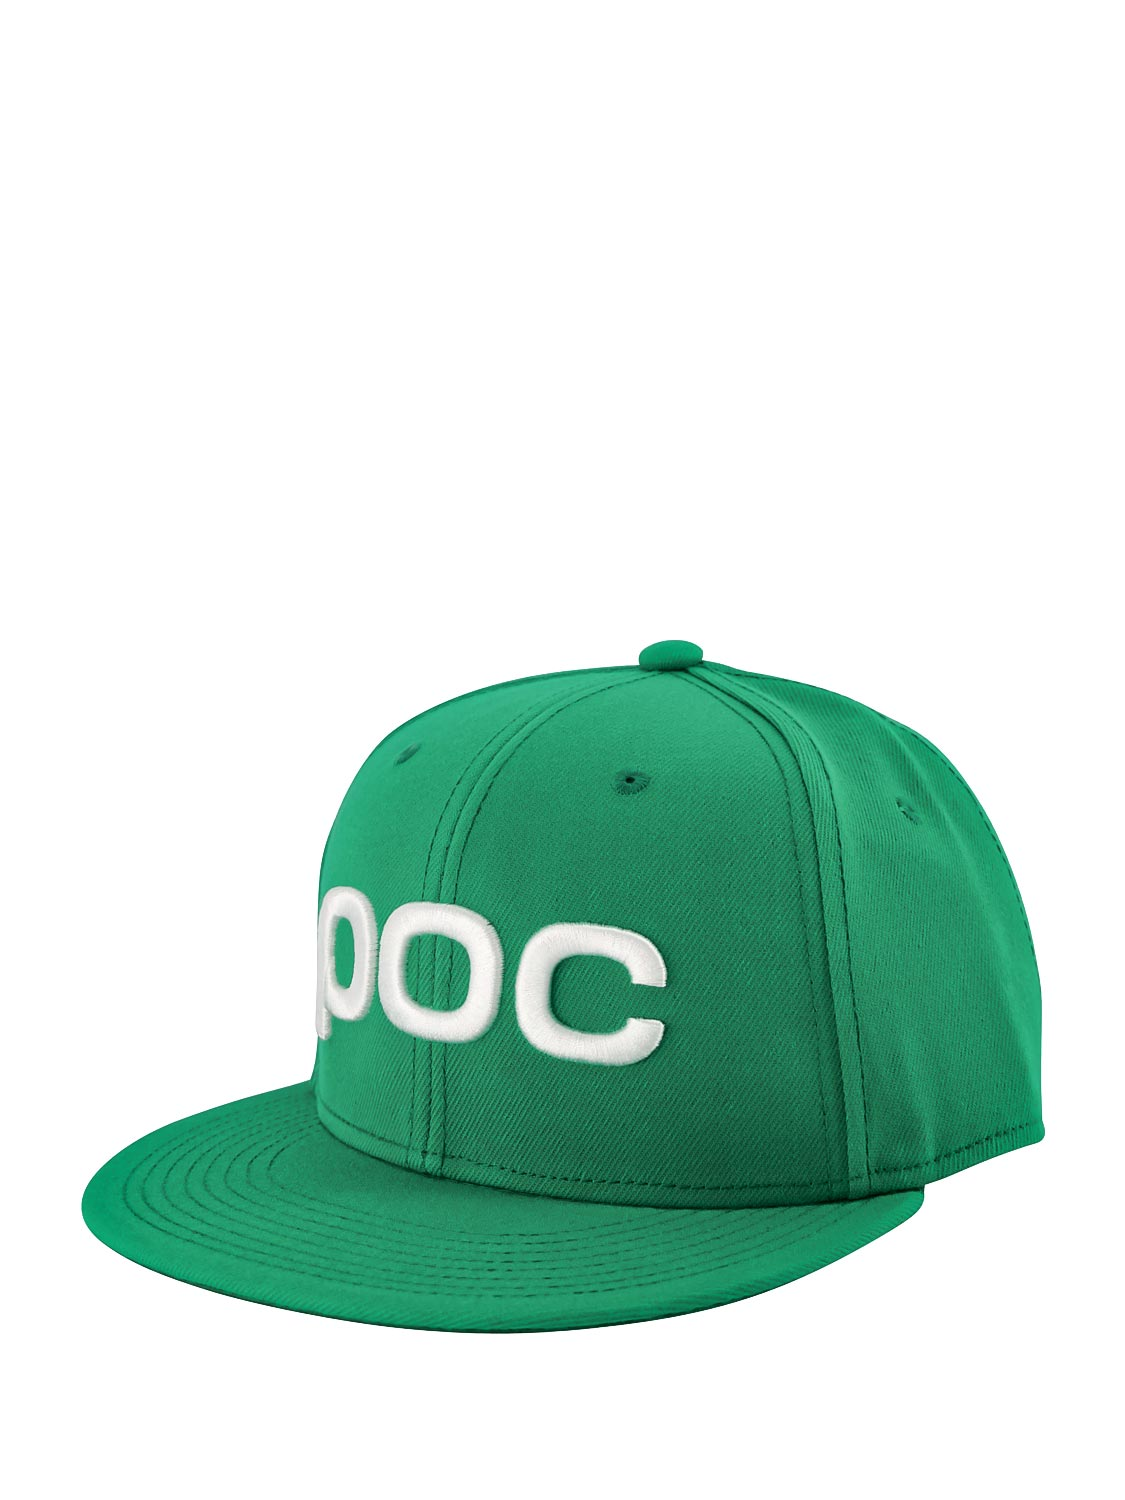 Poc Kids' Corp Cap Jr For For Boys And For Girls In Grün